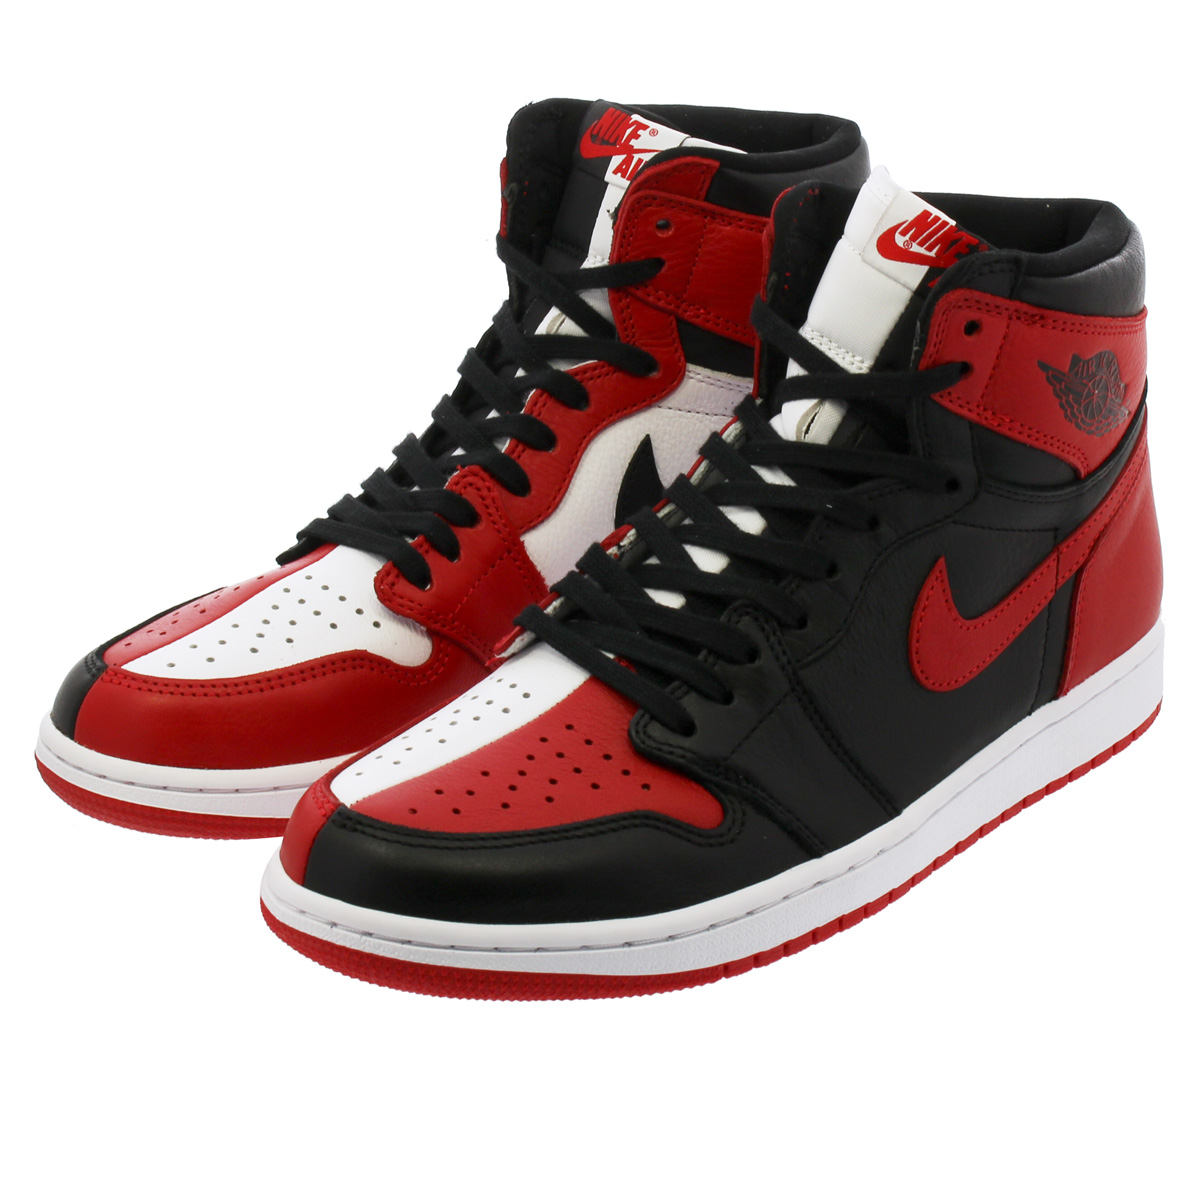 【日本製】 【ビッグサイズ レトロ】 NIKE AIR JORDAN 1 RETRO HIGH OG OG RETRO【HOMAGE TO HOME】【LIMITED 2300】【NUMBERED】 ナイキ エア ジョーダン 1 レトロ ハイ OG BLACK/WHITE/UNIVERSITY RED ar9880-023, 田原市:ef061620 --- clftranspo.dominiotemporario.com